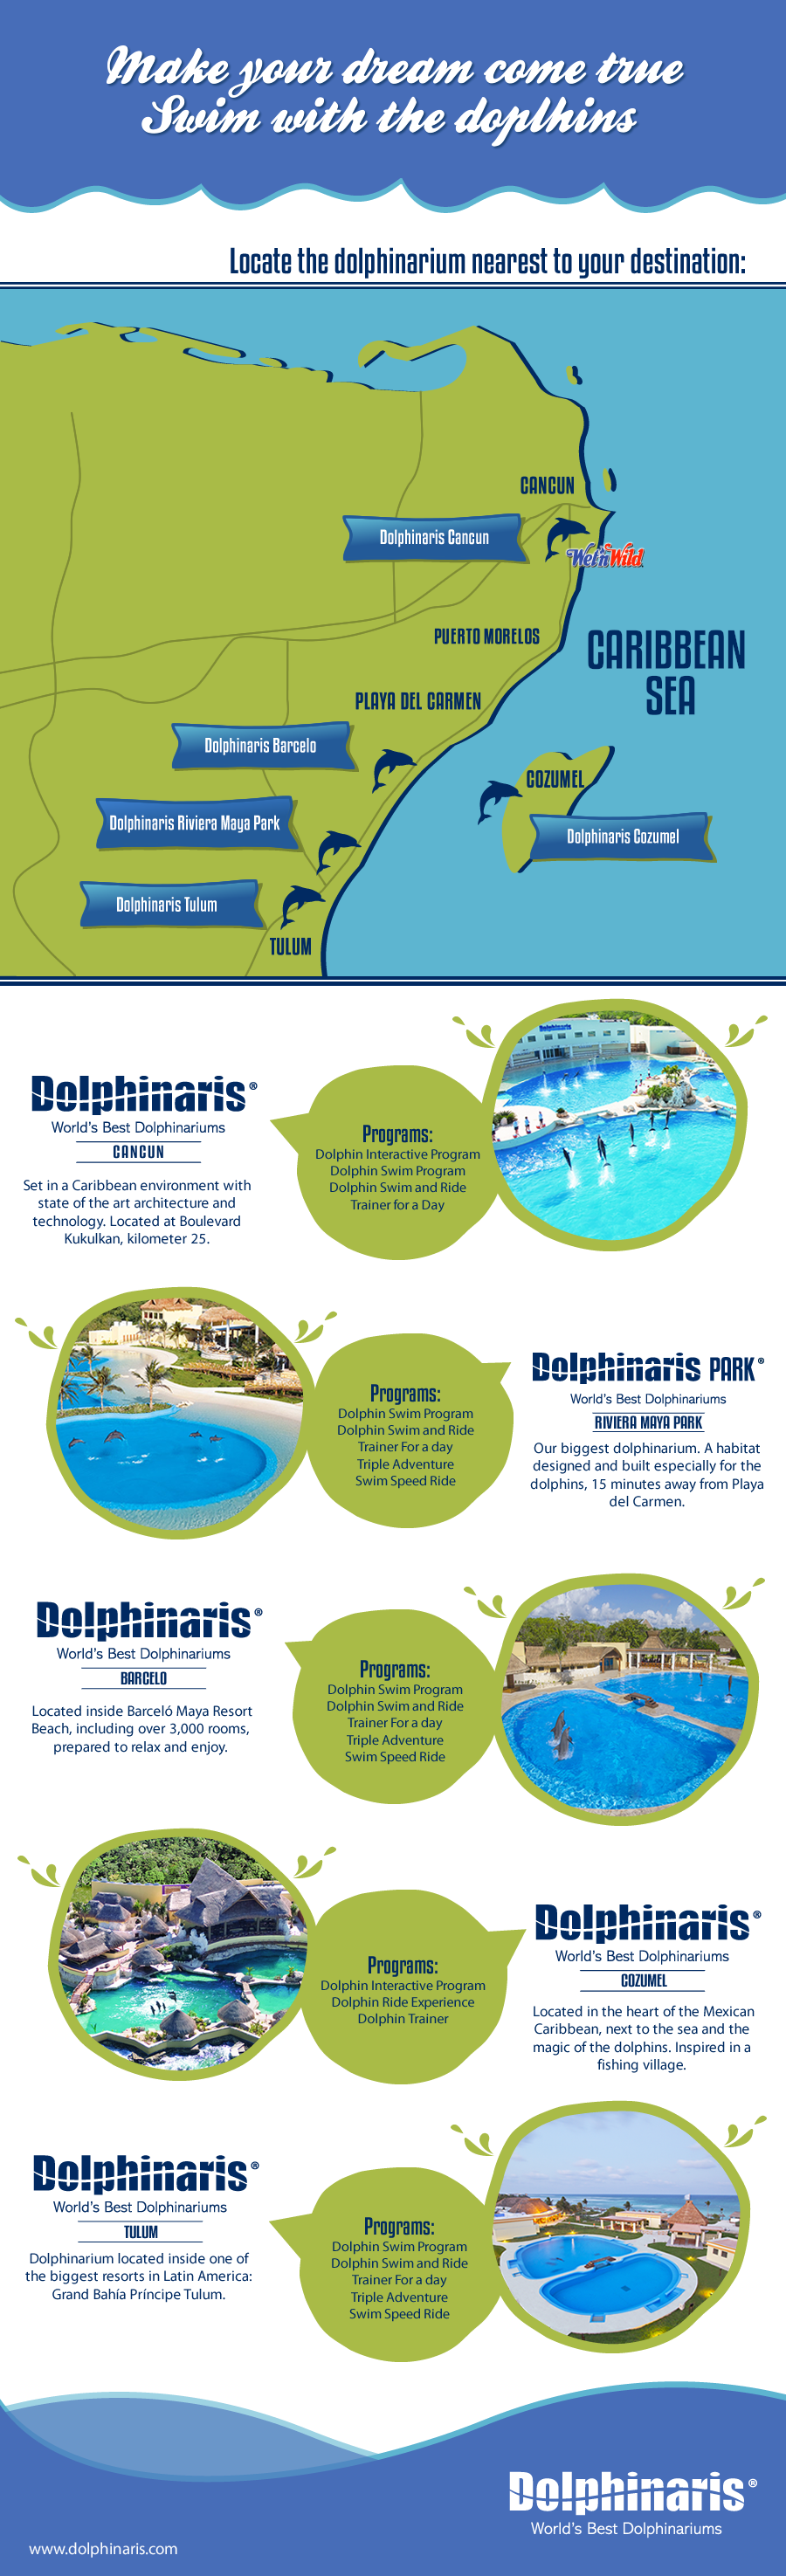 Dolphins can be discovered in many locations in Riviera Maya